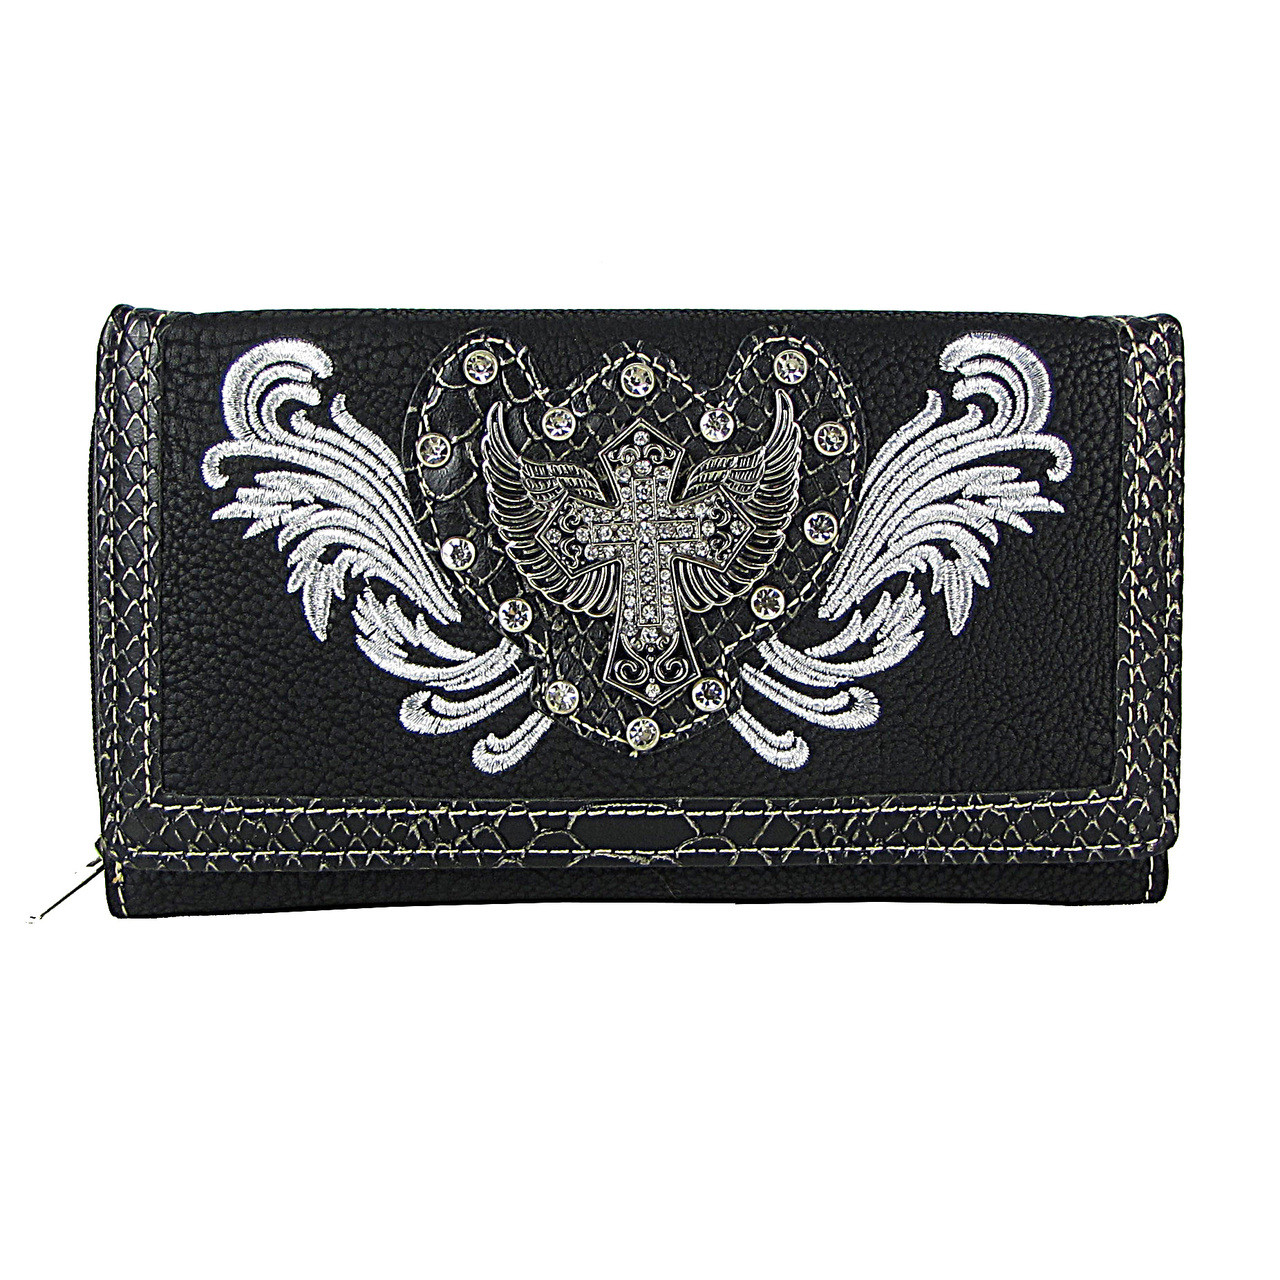 BLACK STUDDED RHINESTONE STITCHED WINGED CROSS LOOK CHECKBOOK WALLET CB1-1275BLK